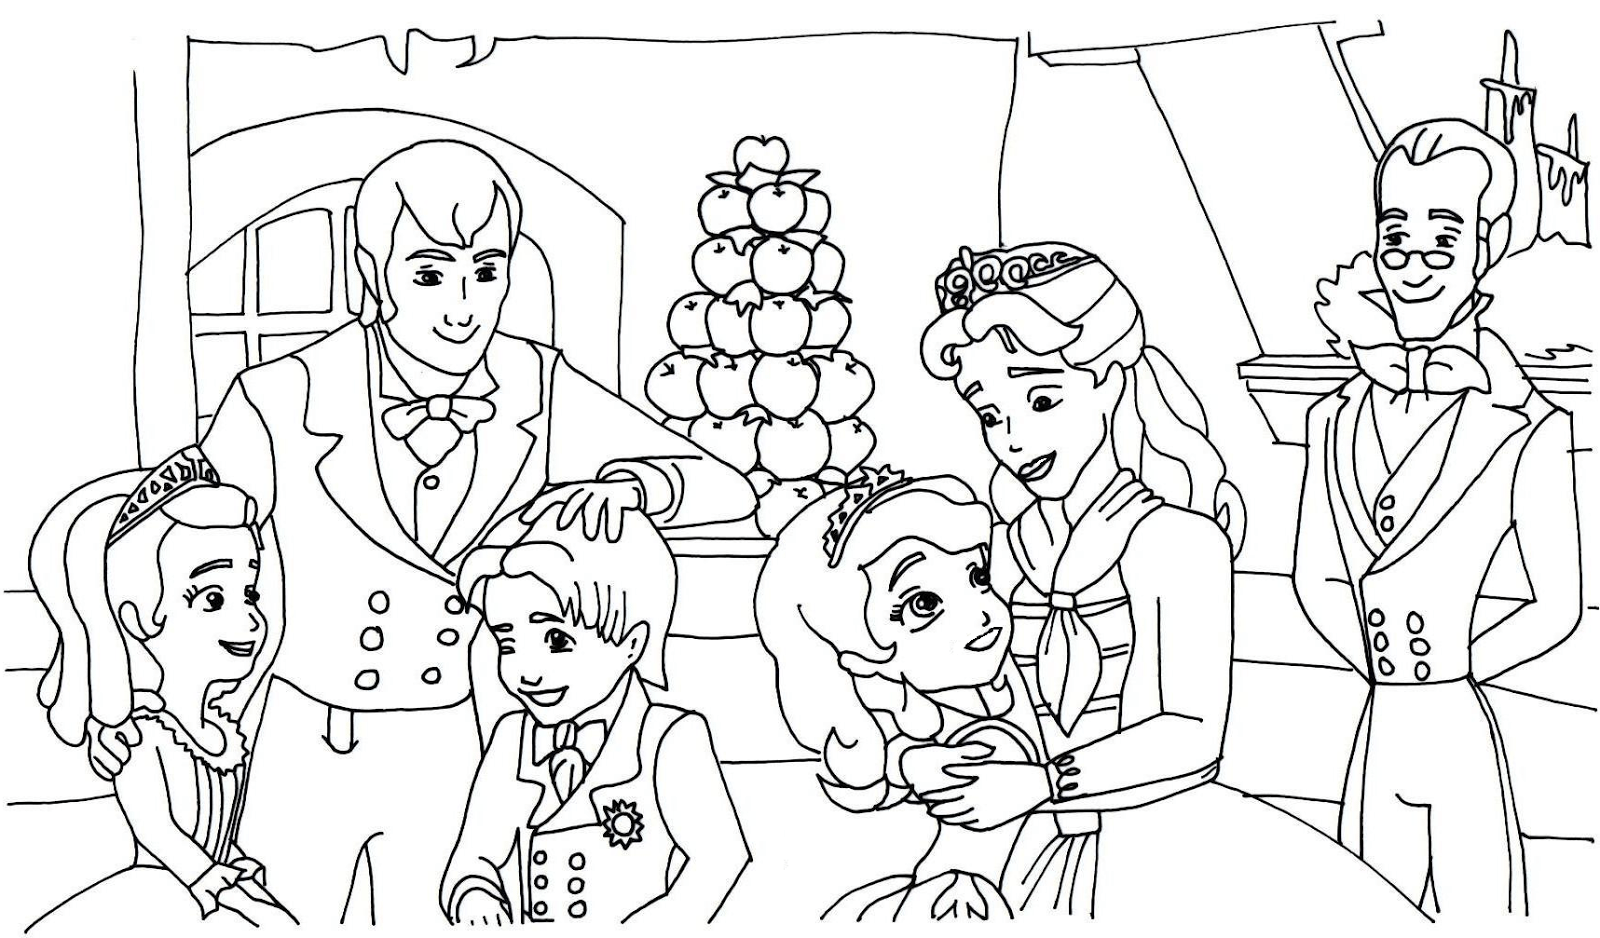 sofia the first coloring pages to print - Master Coloring Pages